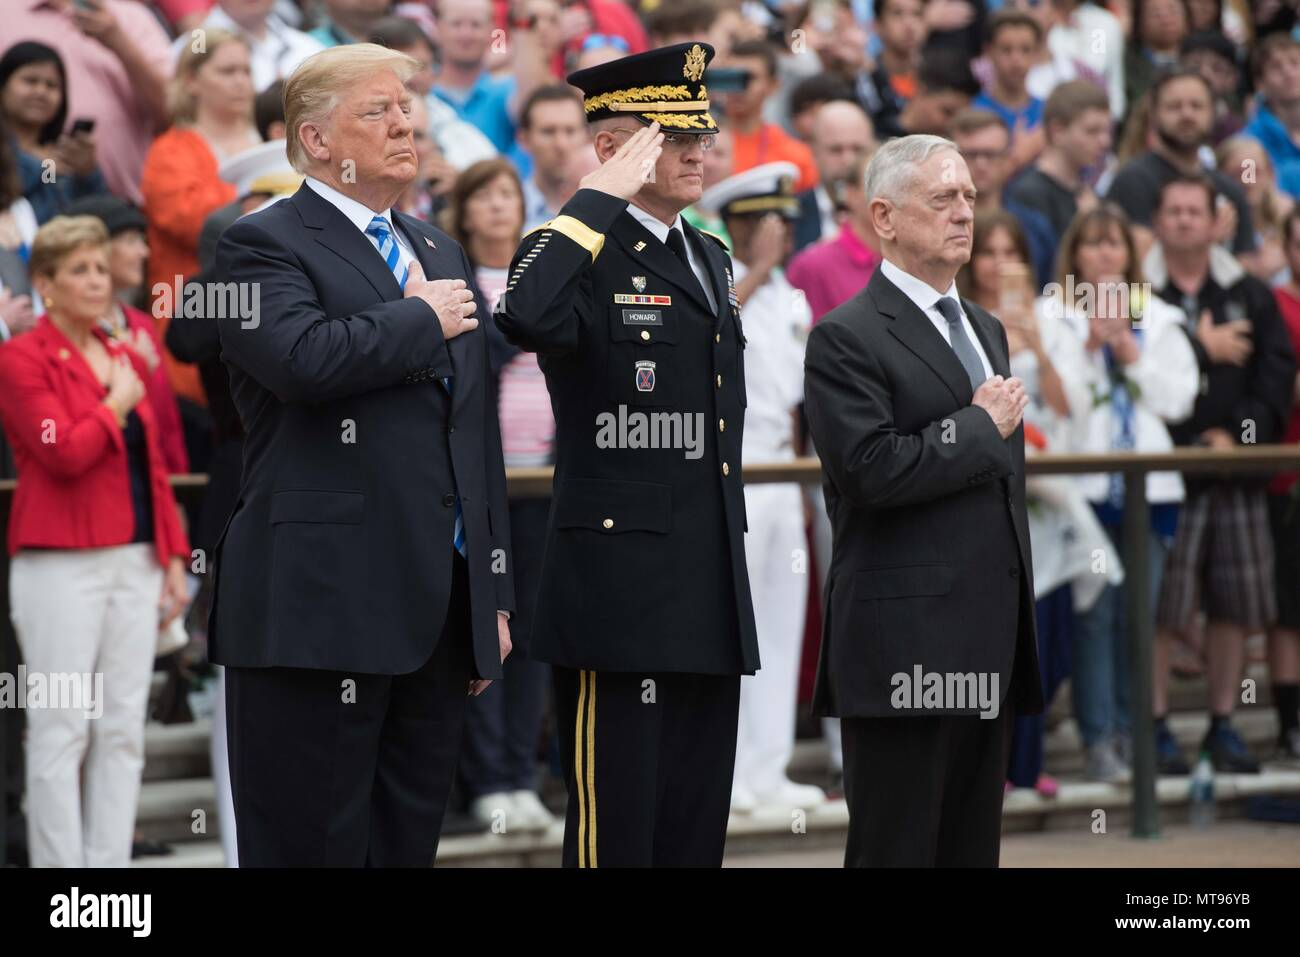 U.S President Donald Trump, left, Army Maj. Gen. Michael Howard, center, and Secretary of Defense James Mattis salute during a wreath ceremony at the Tomb of the Unknown Soldiers during the 150th annual National Memorial Day Observance at Arlington National Cemetery May 28, 2018 in Arlington, Virginia. - Stock Image